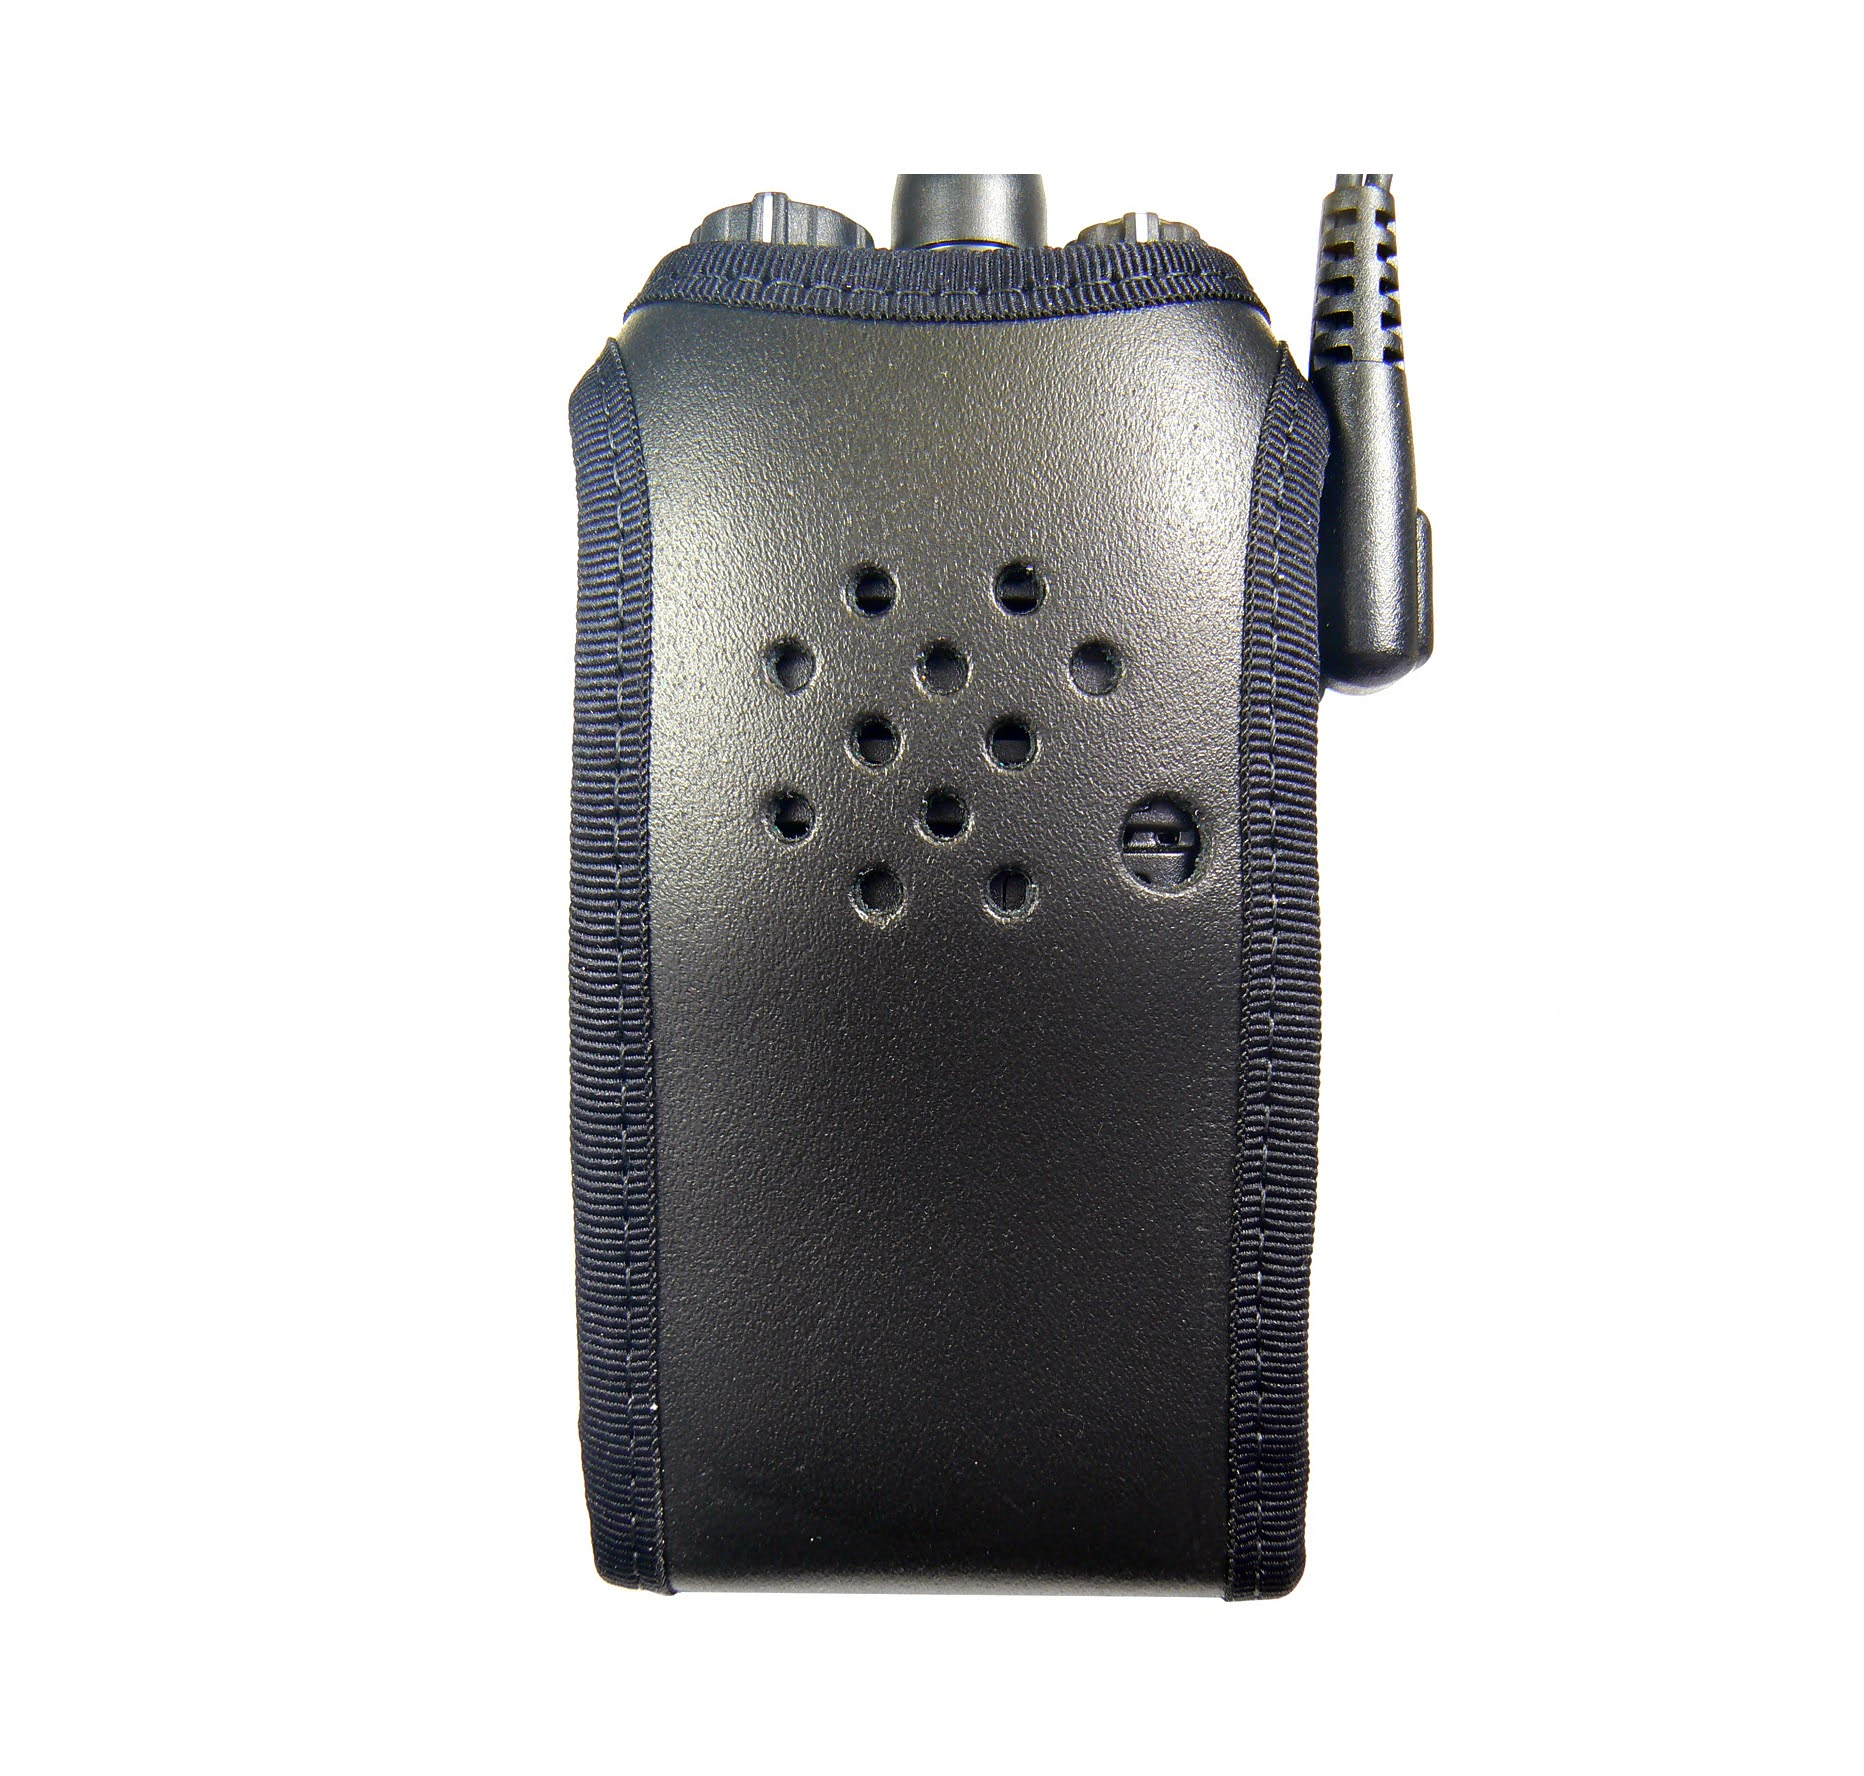 Hytera PD505 Radio Case leather